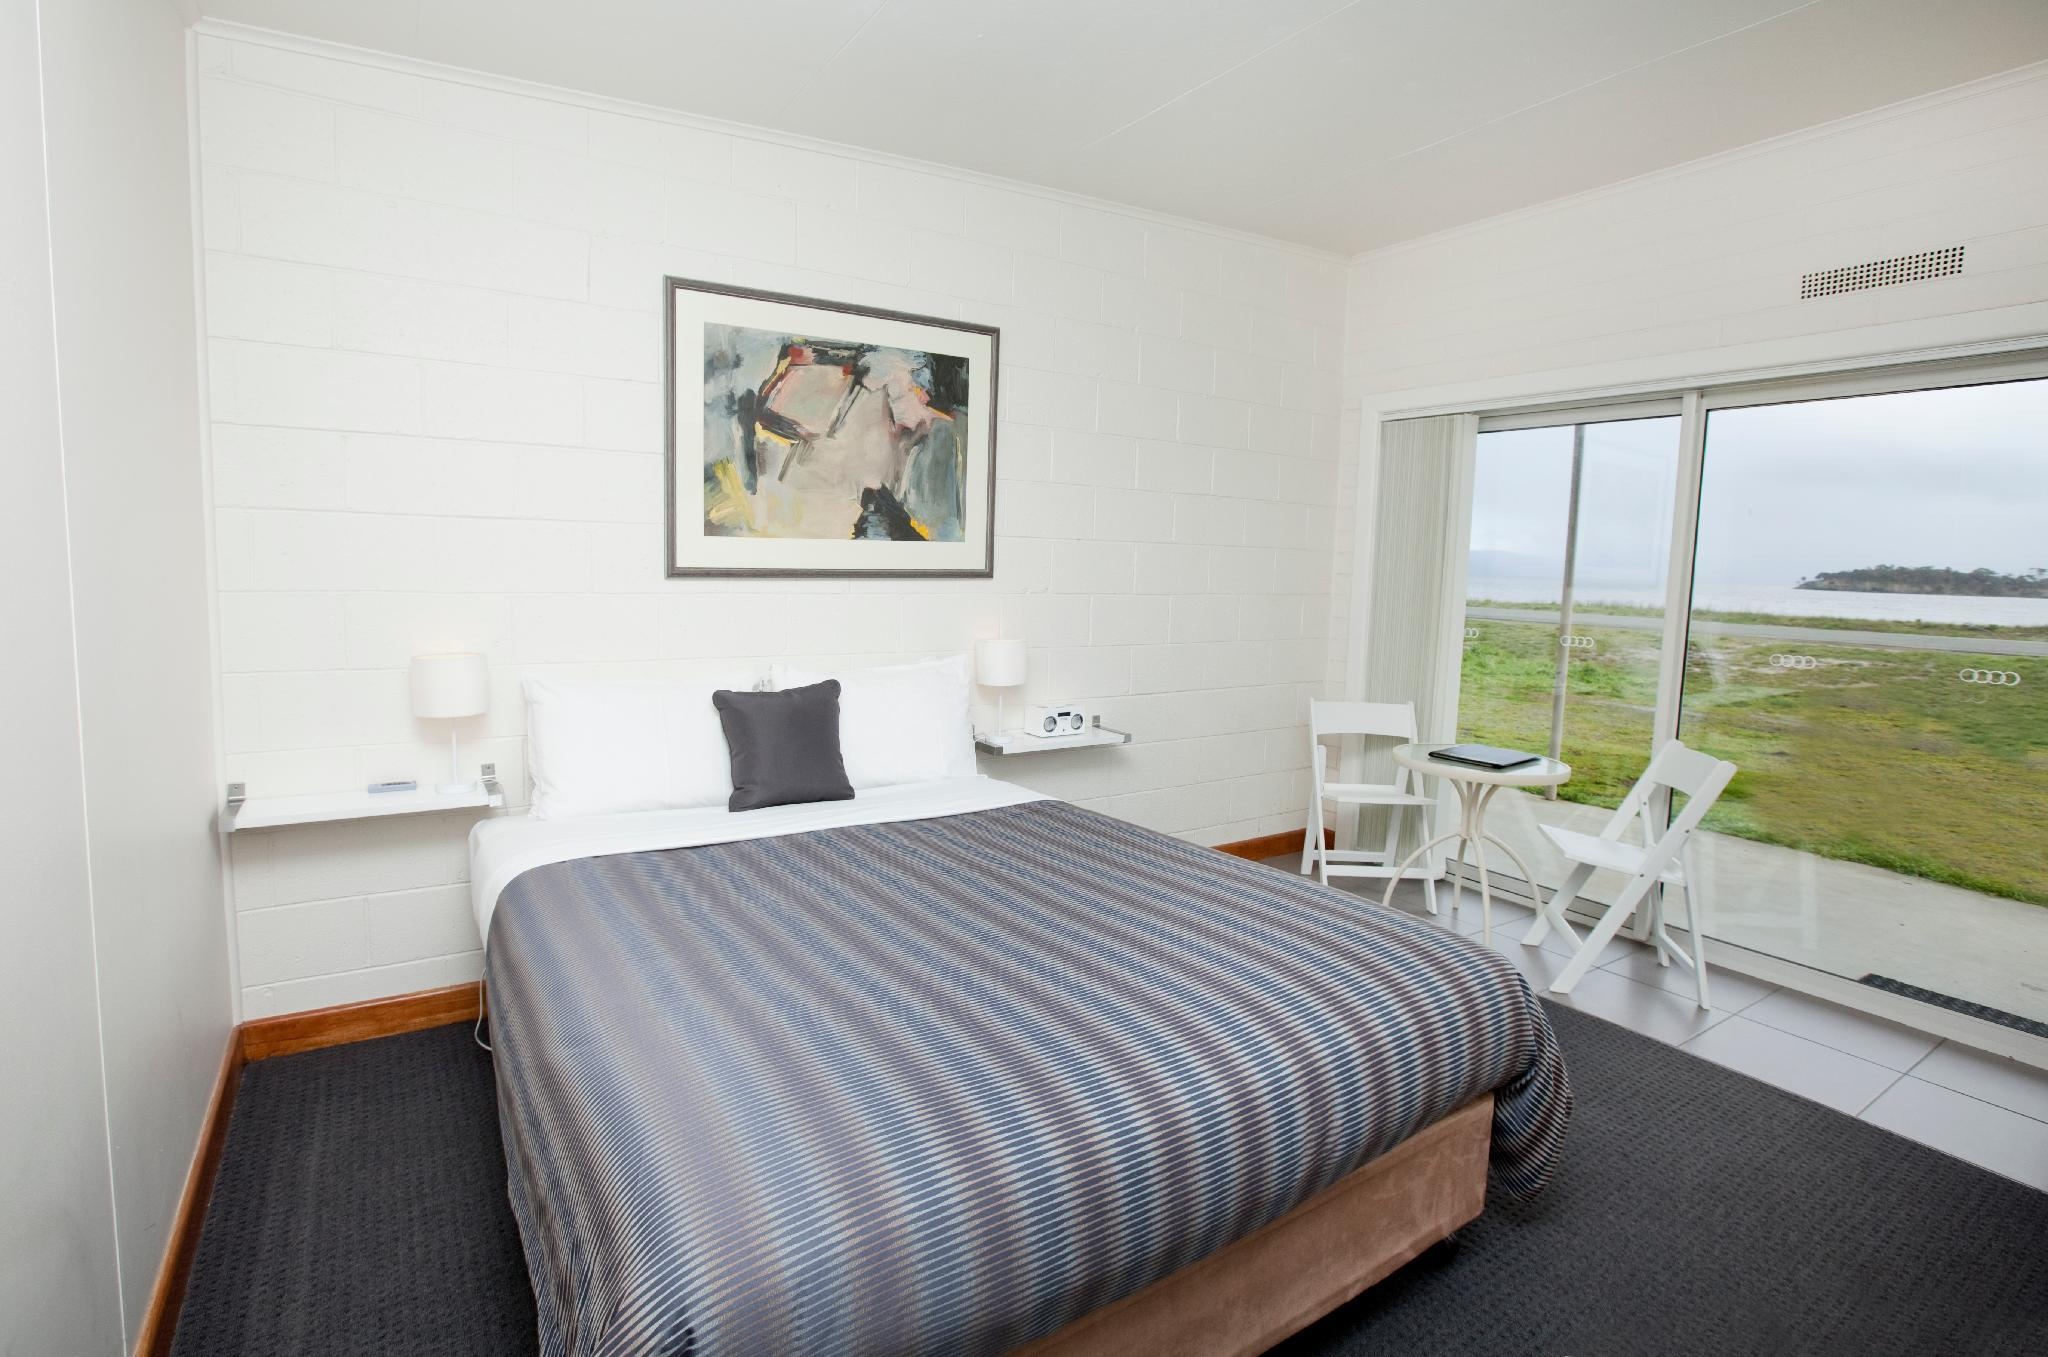 Bruny Island Escapes and Hotel Bruny, Kingborough